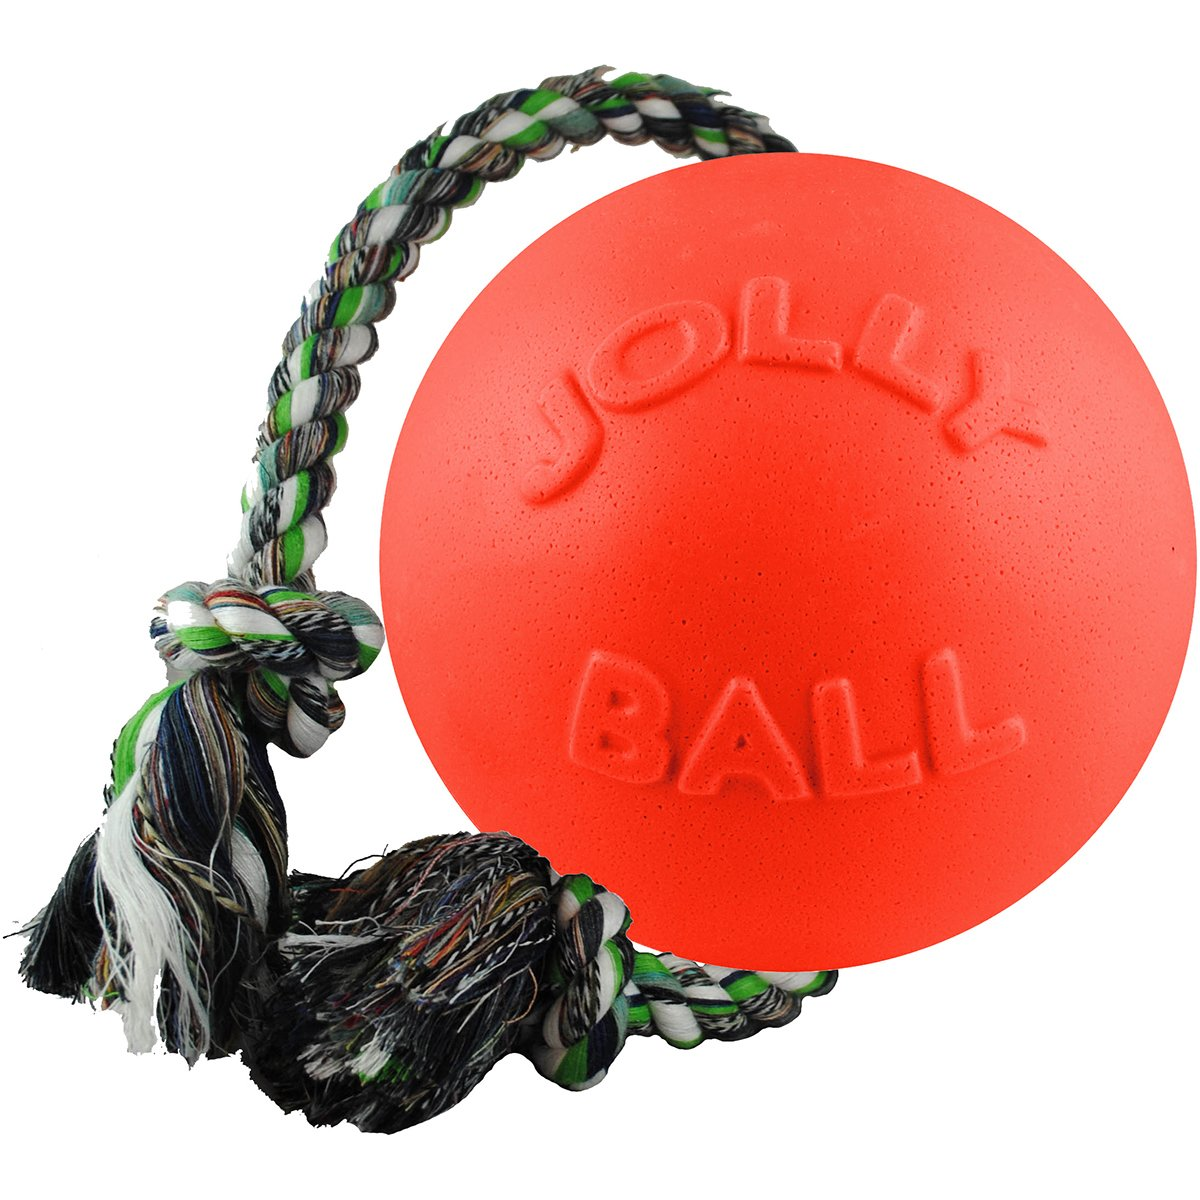 Jolly Pets Romp N Roll Interactive Floats Tug Fetch Pet Dog Chew Toy Orange 4.5'' by Jolly Pets (Image #1)